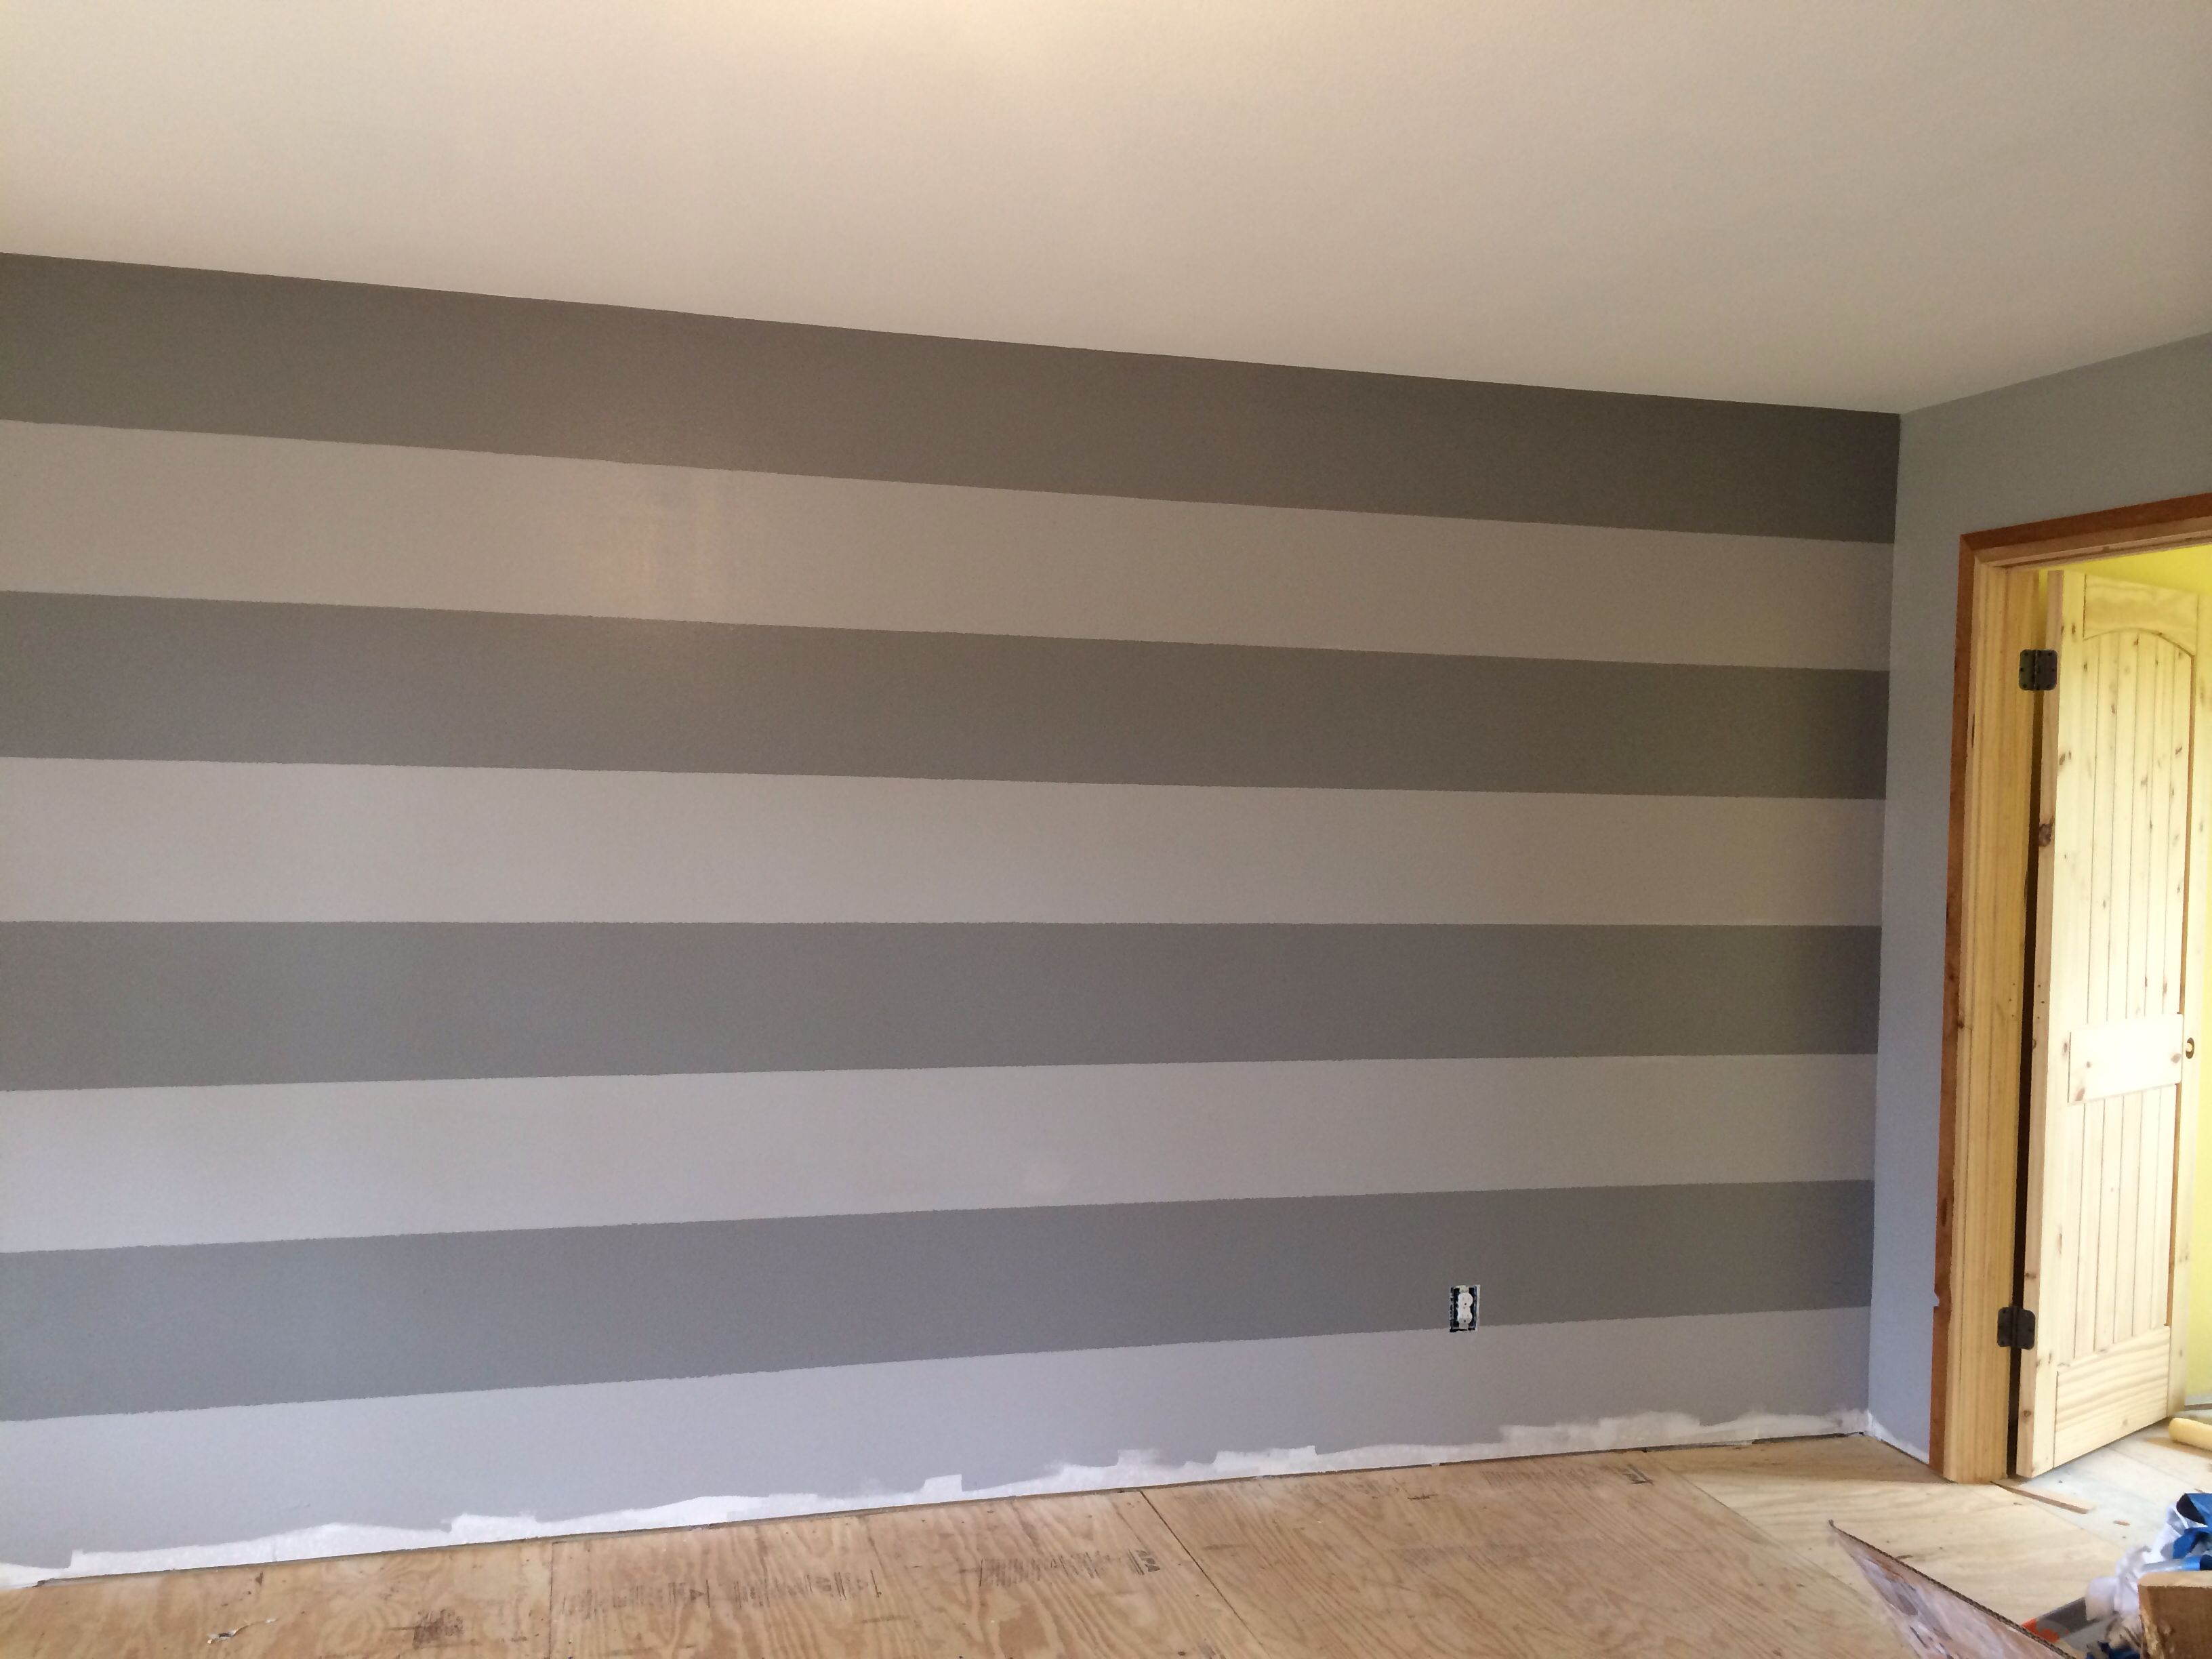 Wall paint ideas stripes - Gray Stripes Wall Behr Paint Colors Porpoise Anonymous